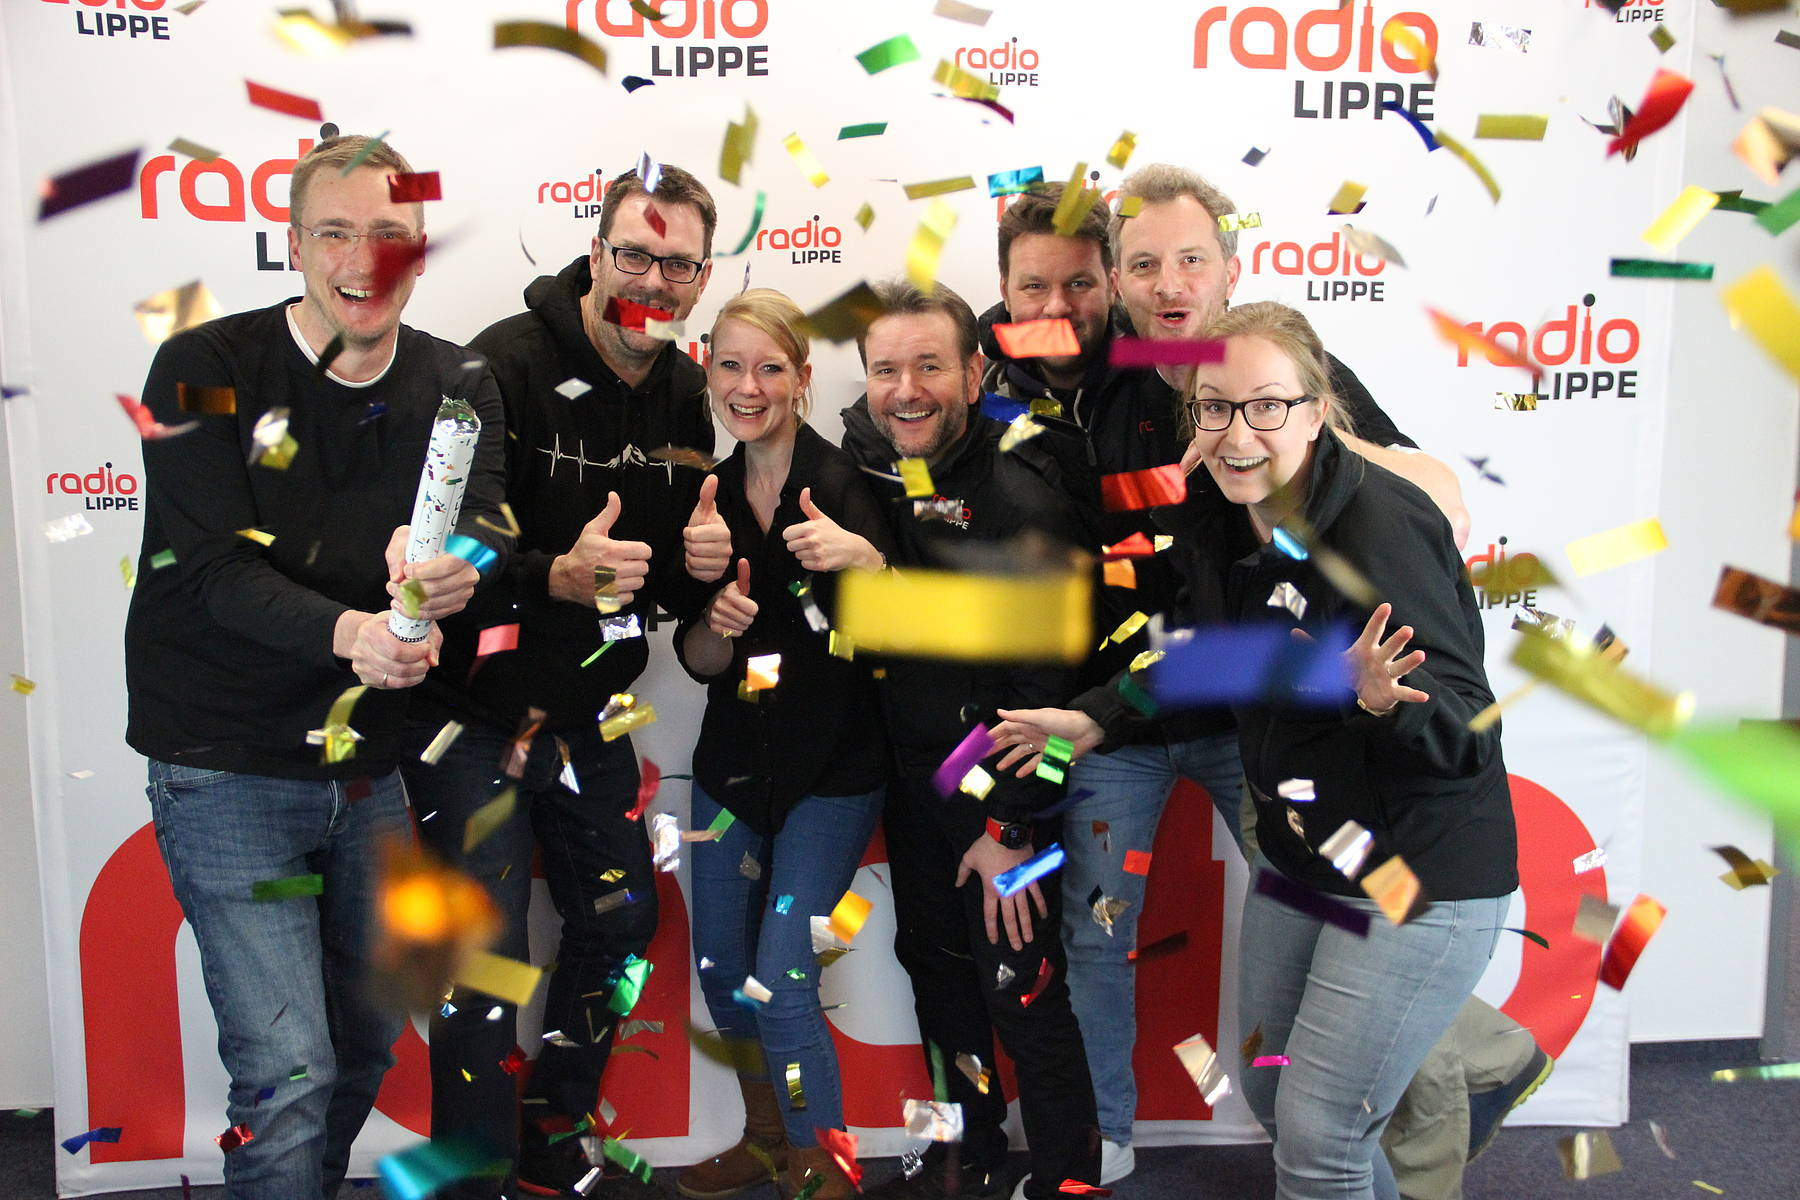 Radio Lippe Team